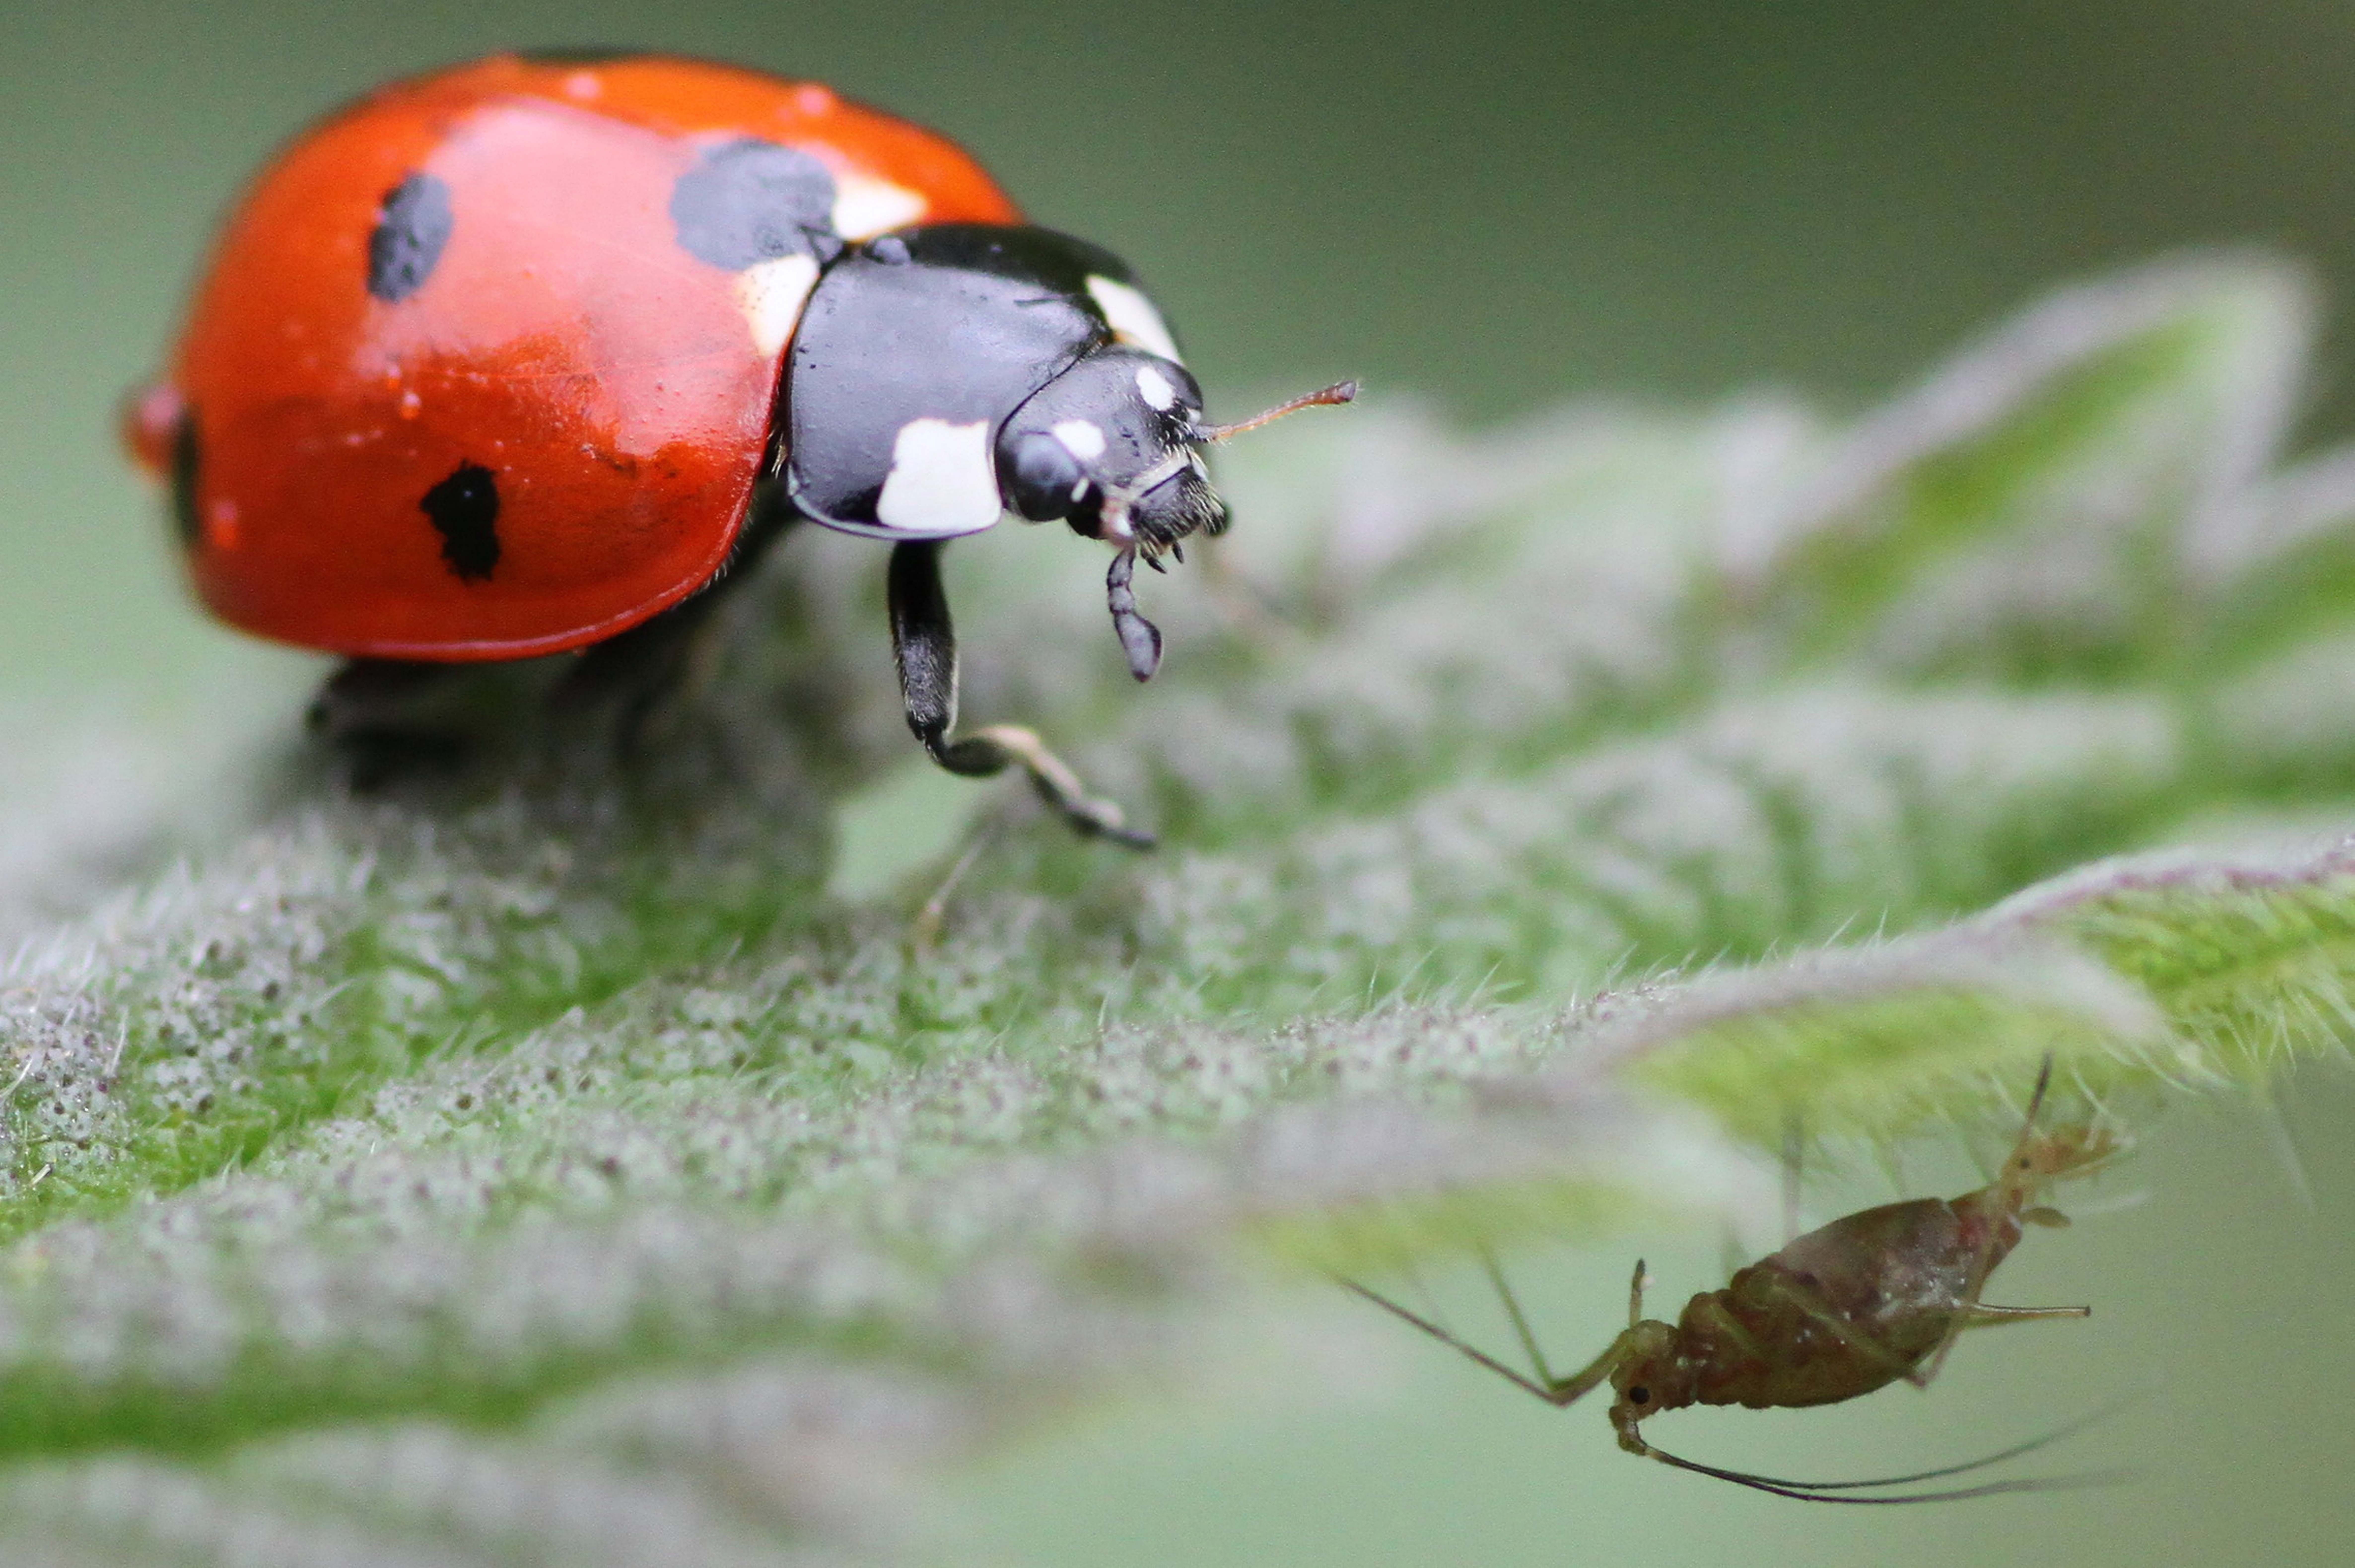 Seven spot ladybird, Coccinella 7-punctata, and aphid